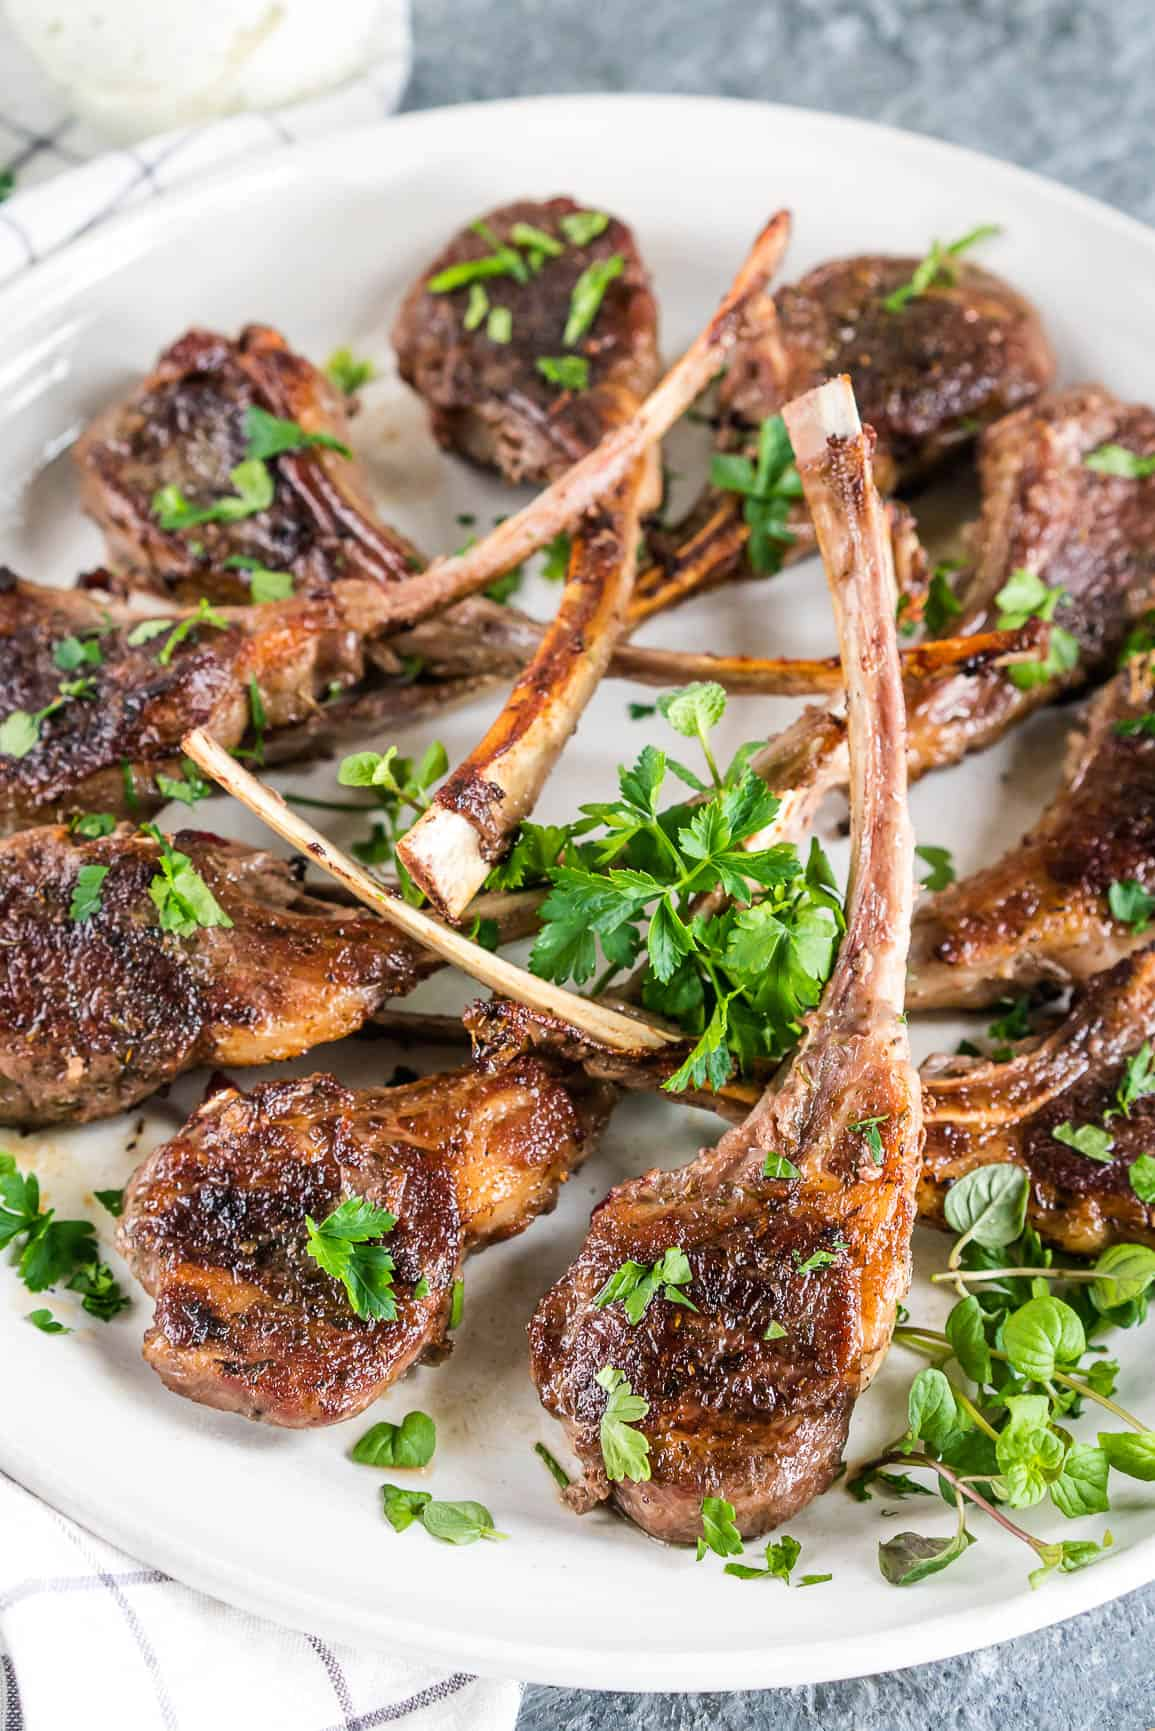 Always Perfectly Cooked Sous Vide Lamb Chops using Sous Vide